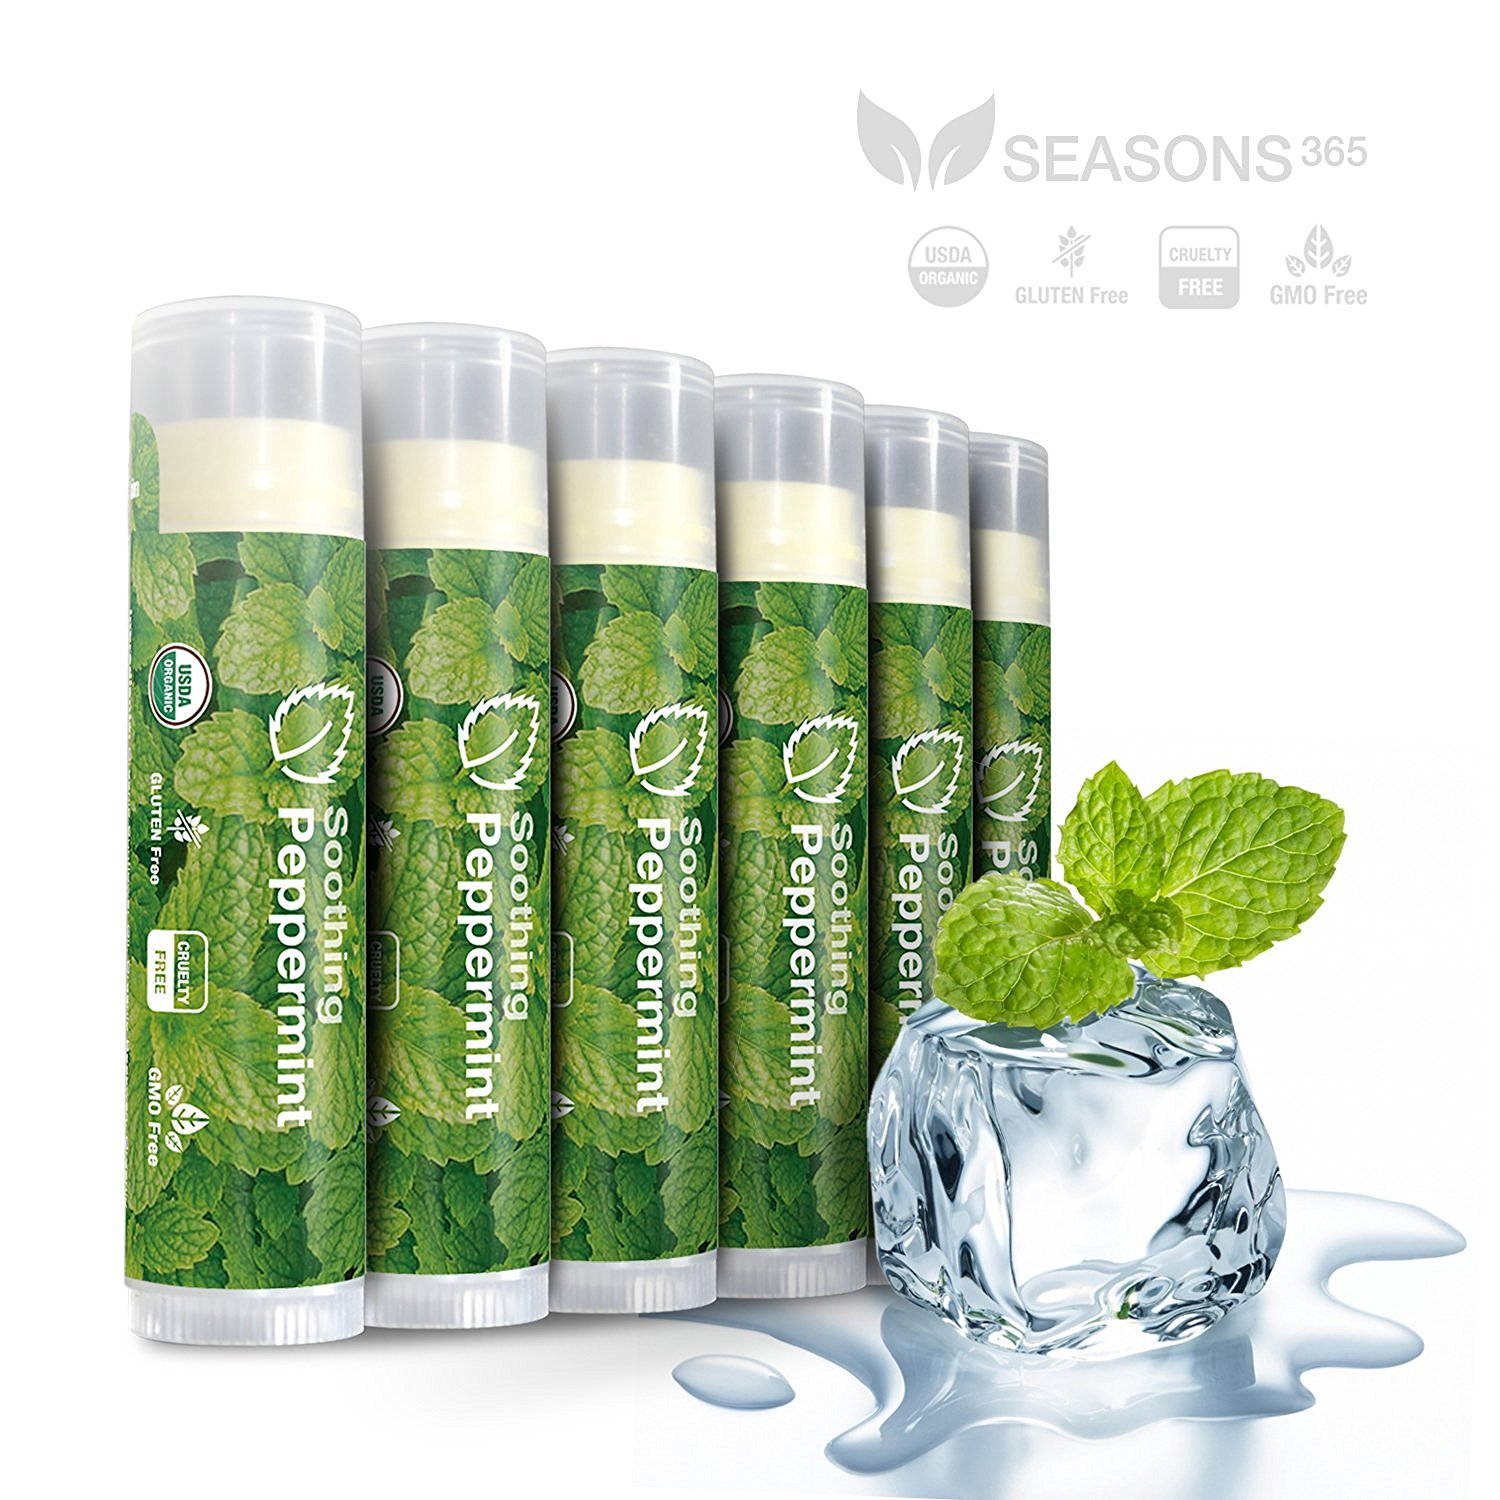 6-seasons365-lip-balm-peppermint-natural-organic